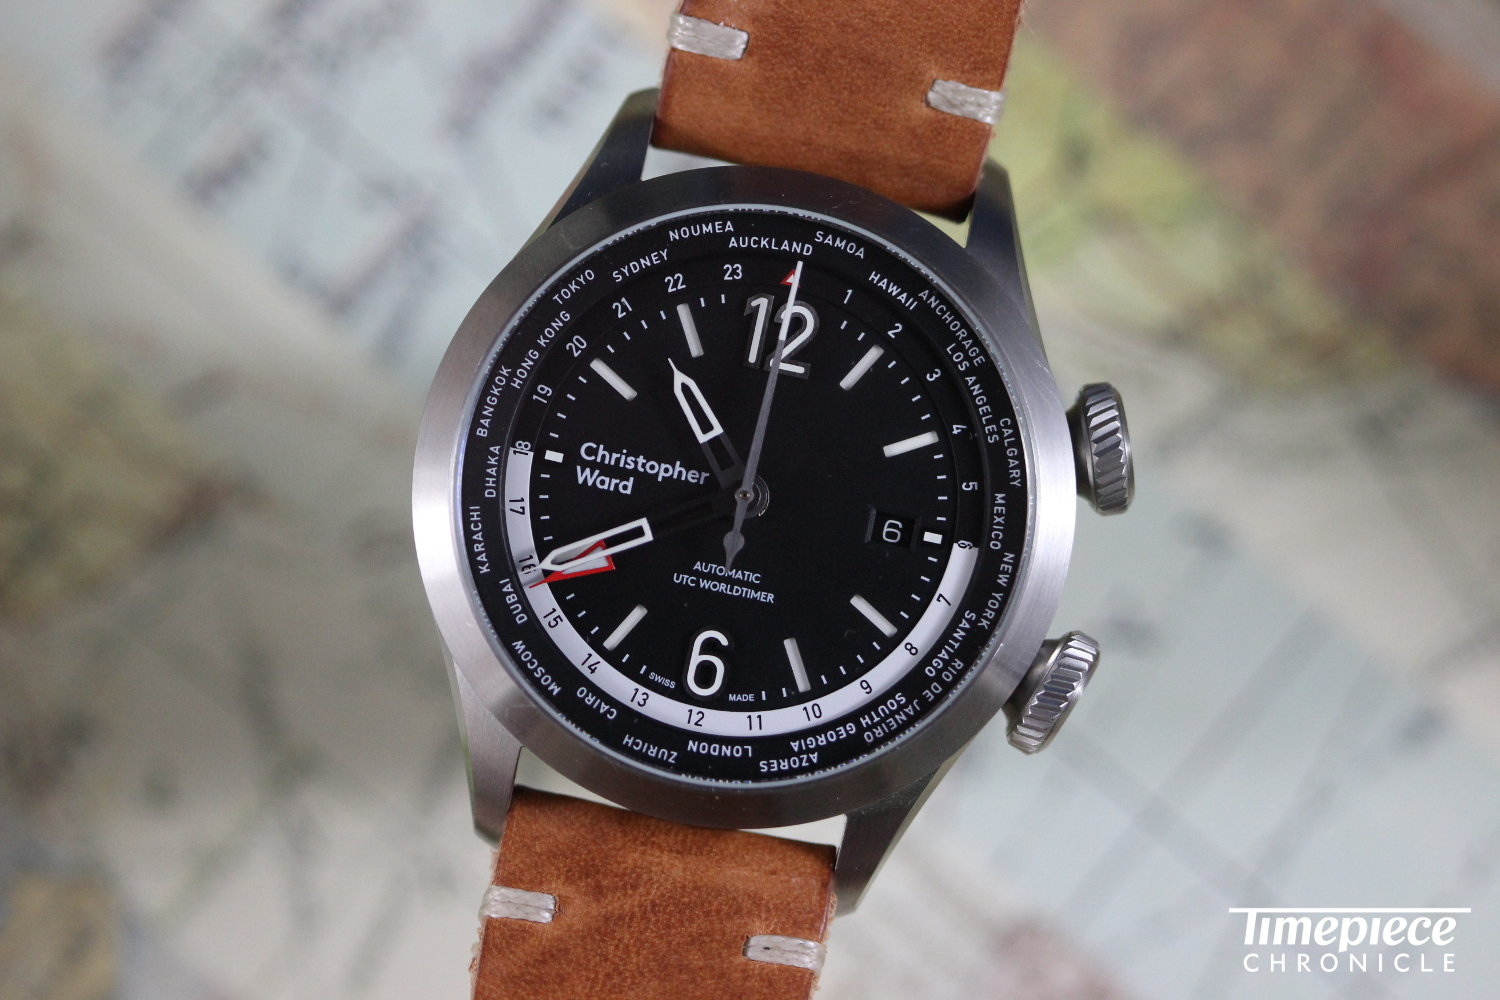 The design of the C8 UTC Worldtimer is crisp and wonderfully legible.